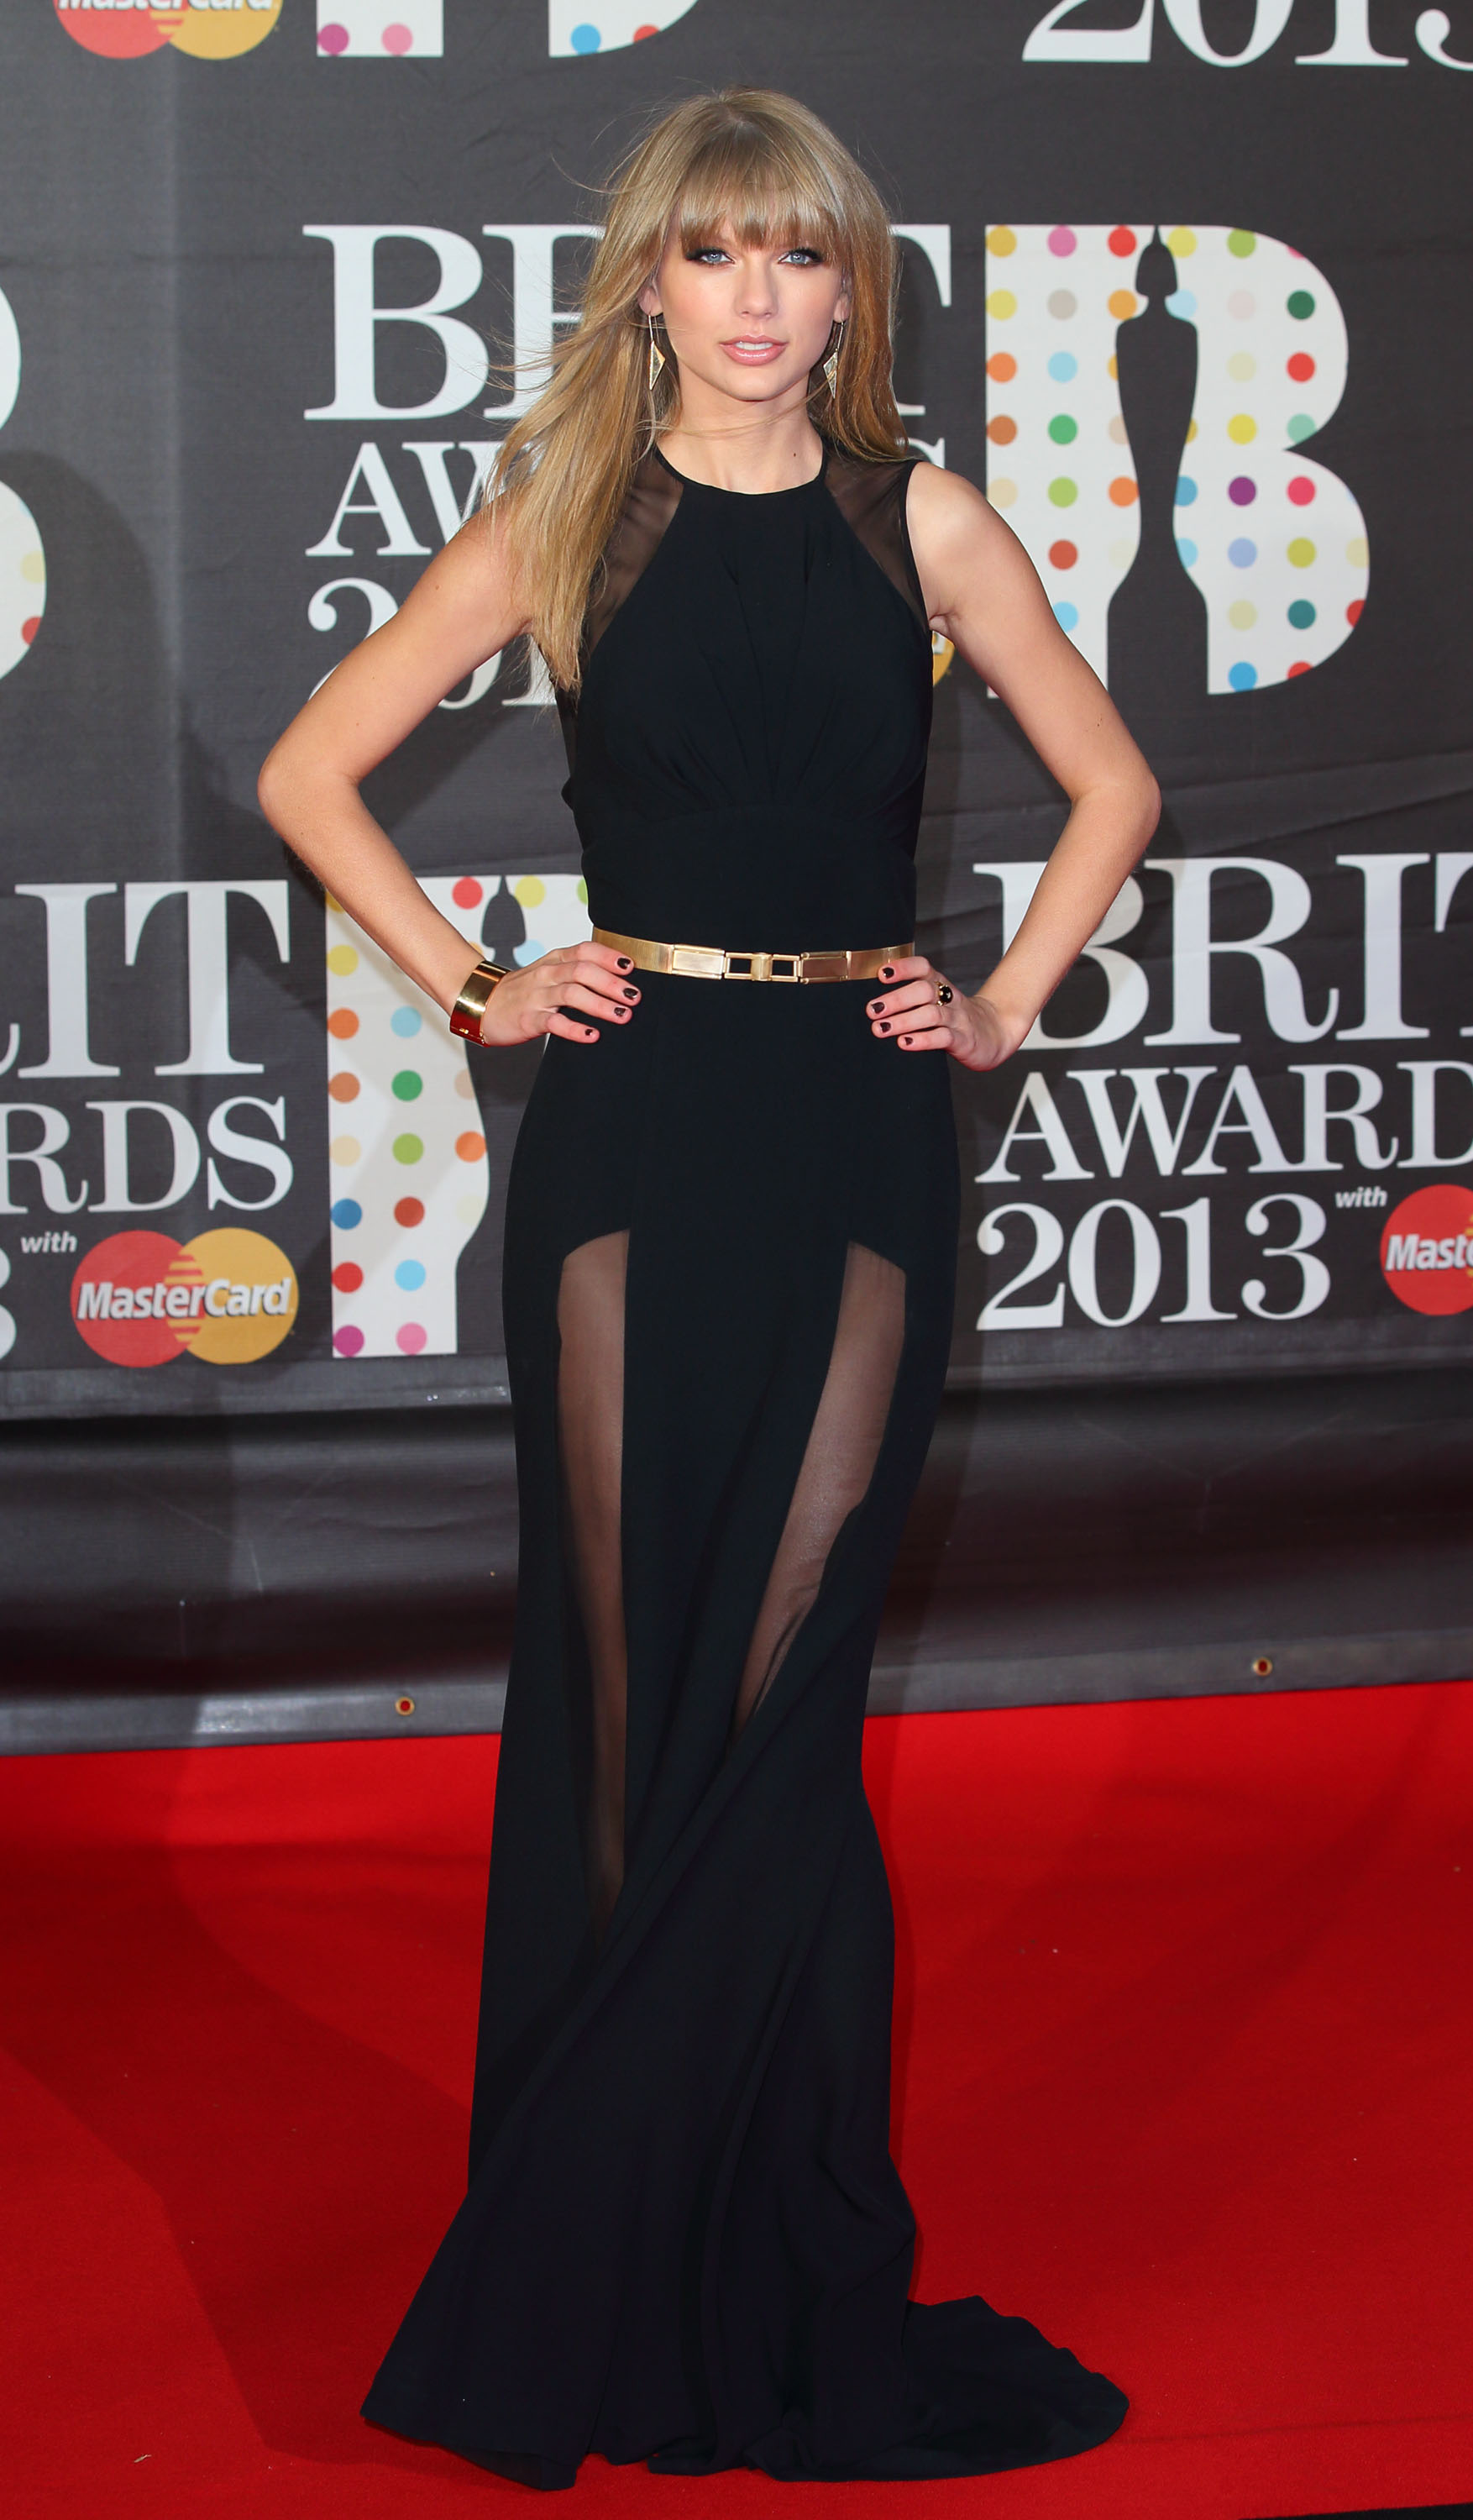 Taylor Swift wore Elie Saab at the Brit Awards in London.